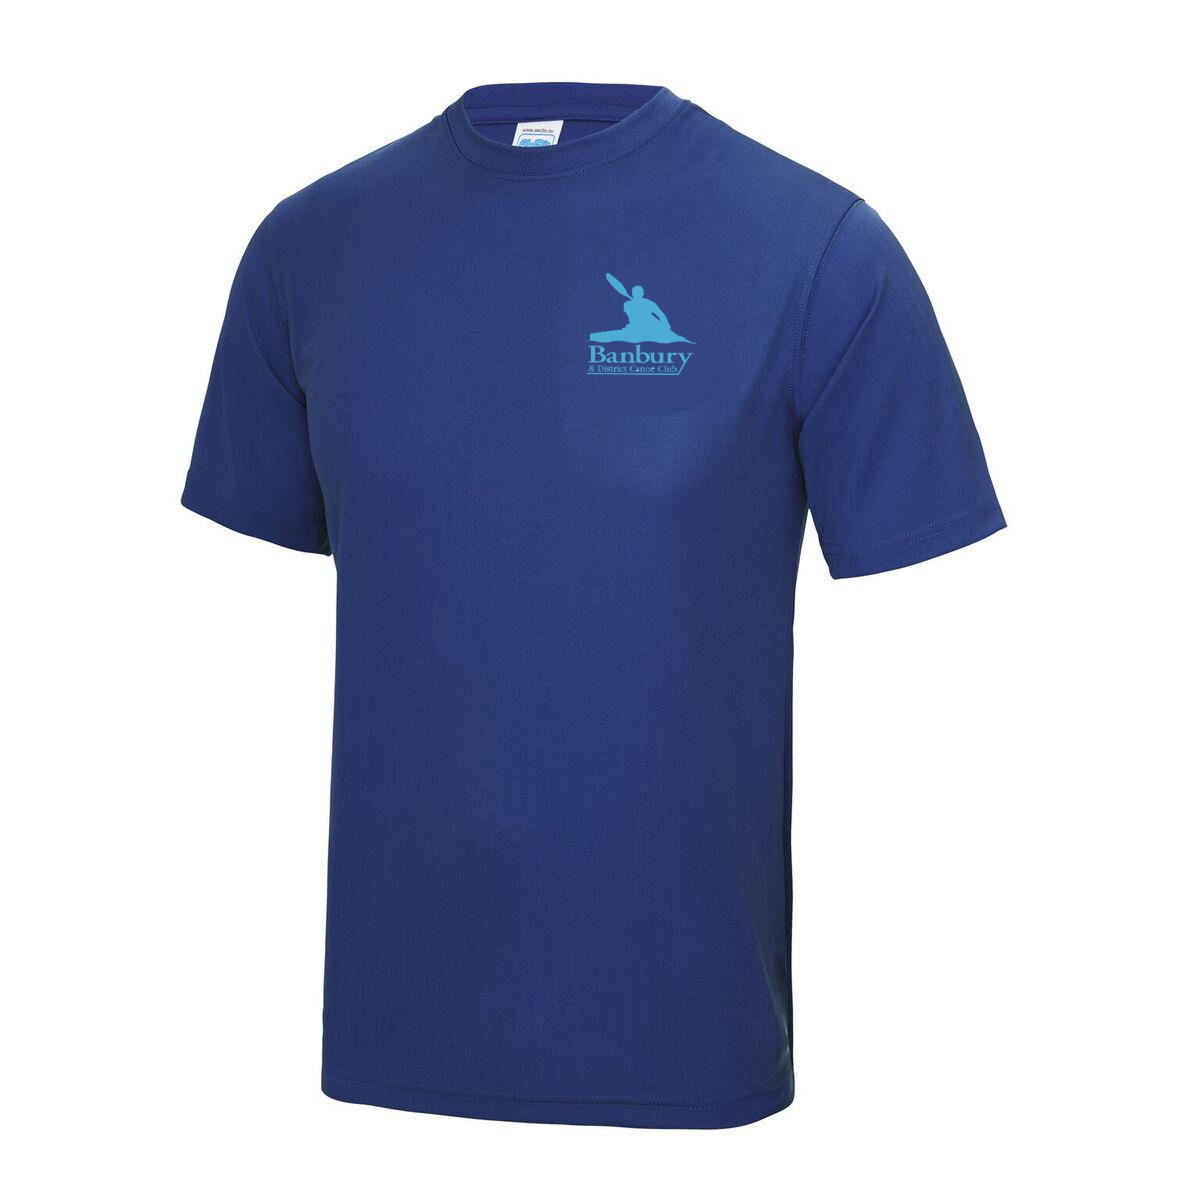 Banbury And District Canoe Club Youth Tee